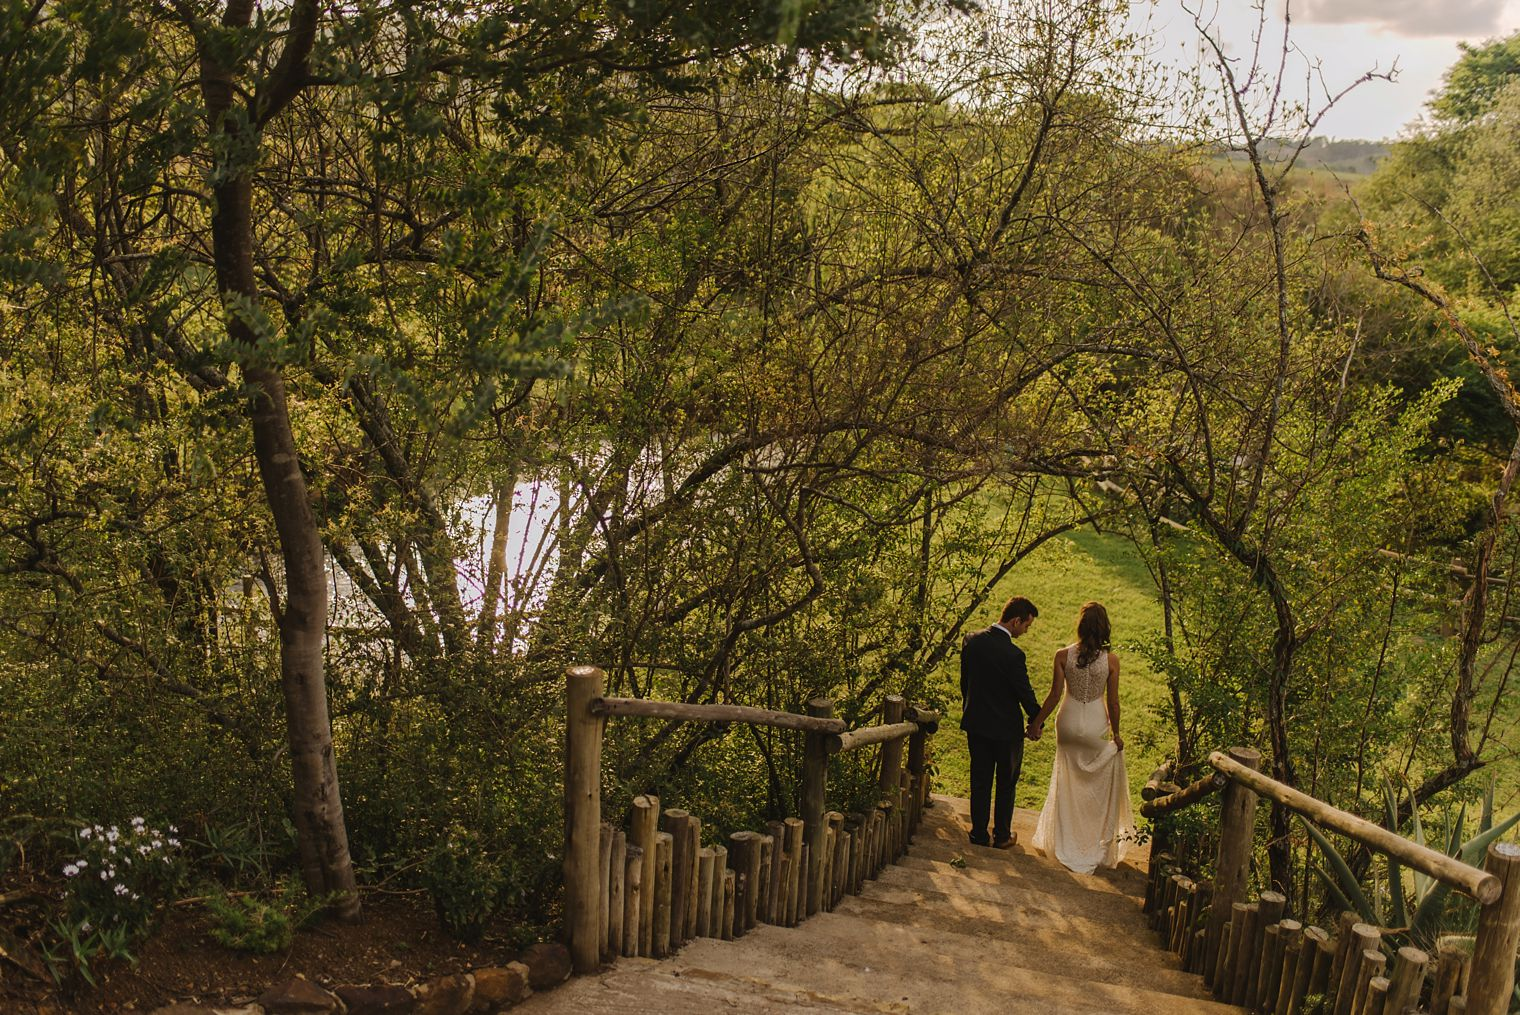 candid wedding portrait at orchards venue in kzn